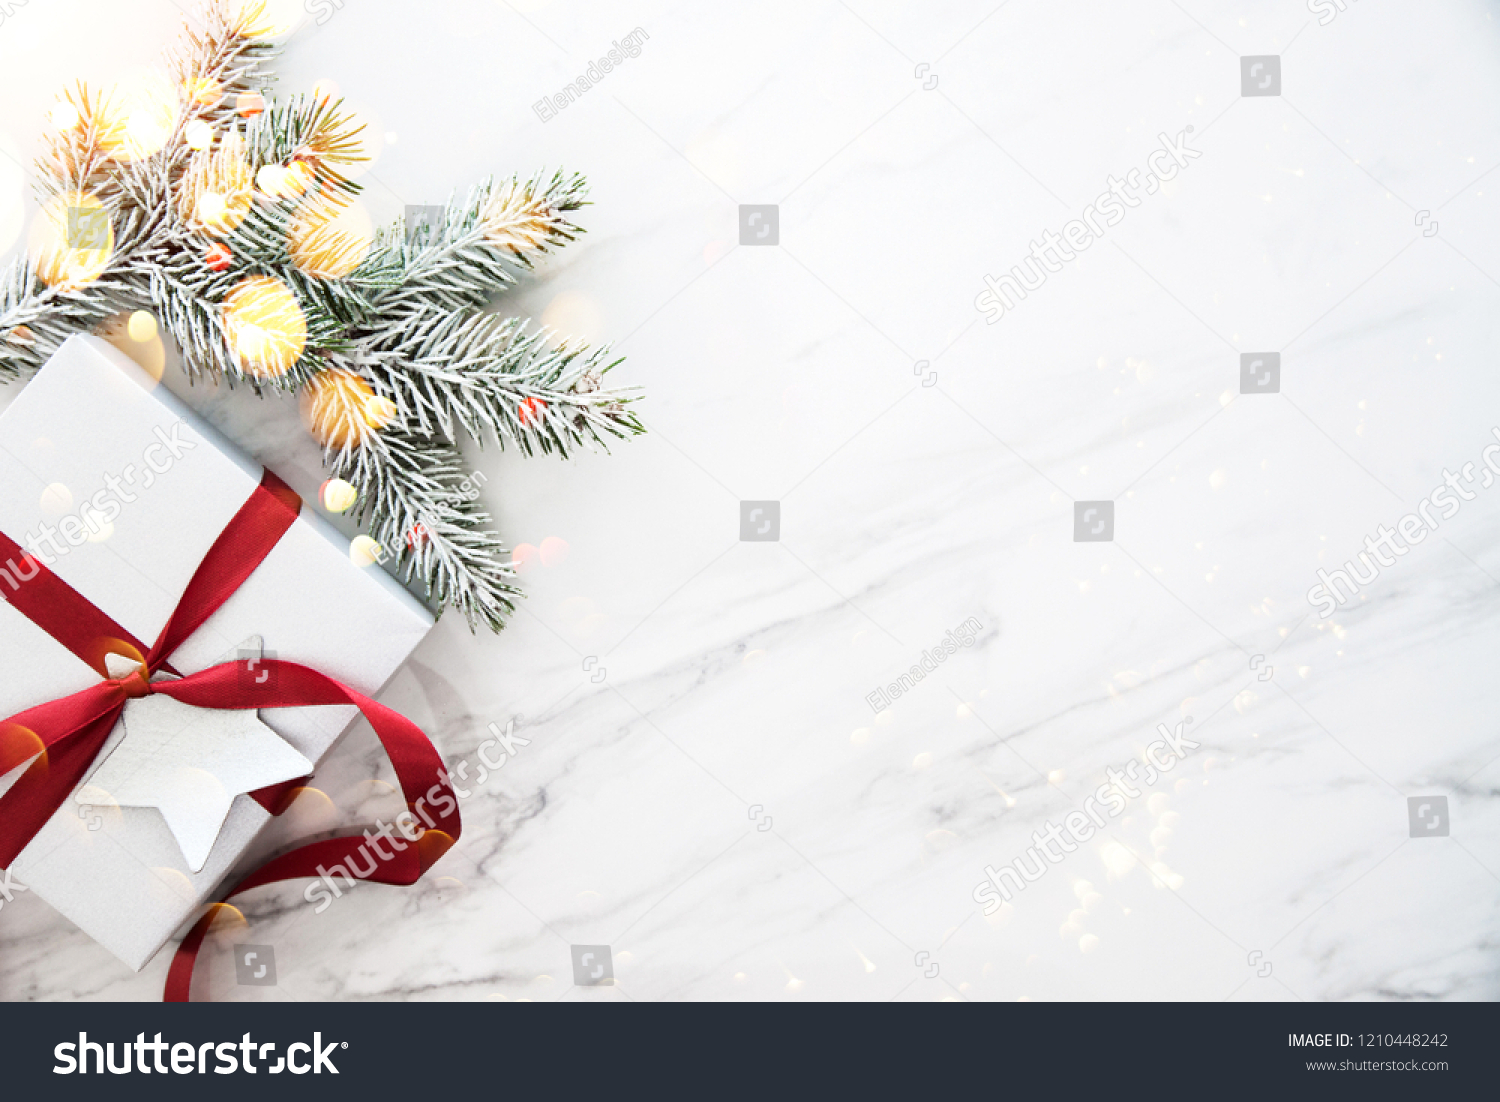 Merry Christmas Happy Holidays Greeting Card Stock Photo (Edit Now ...